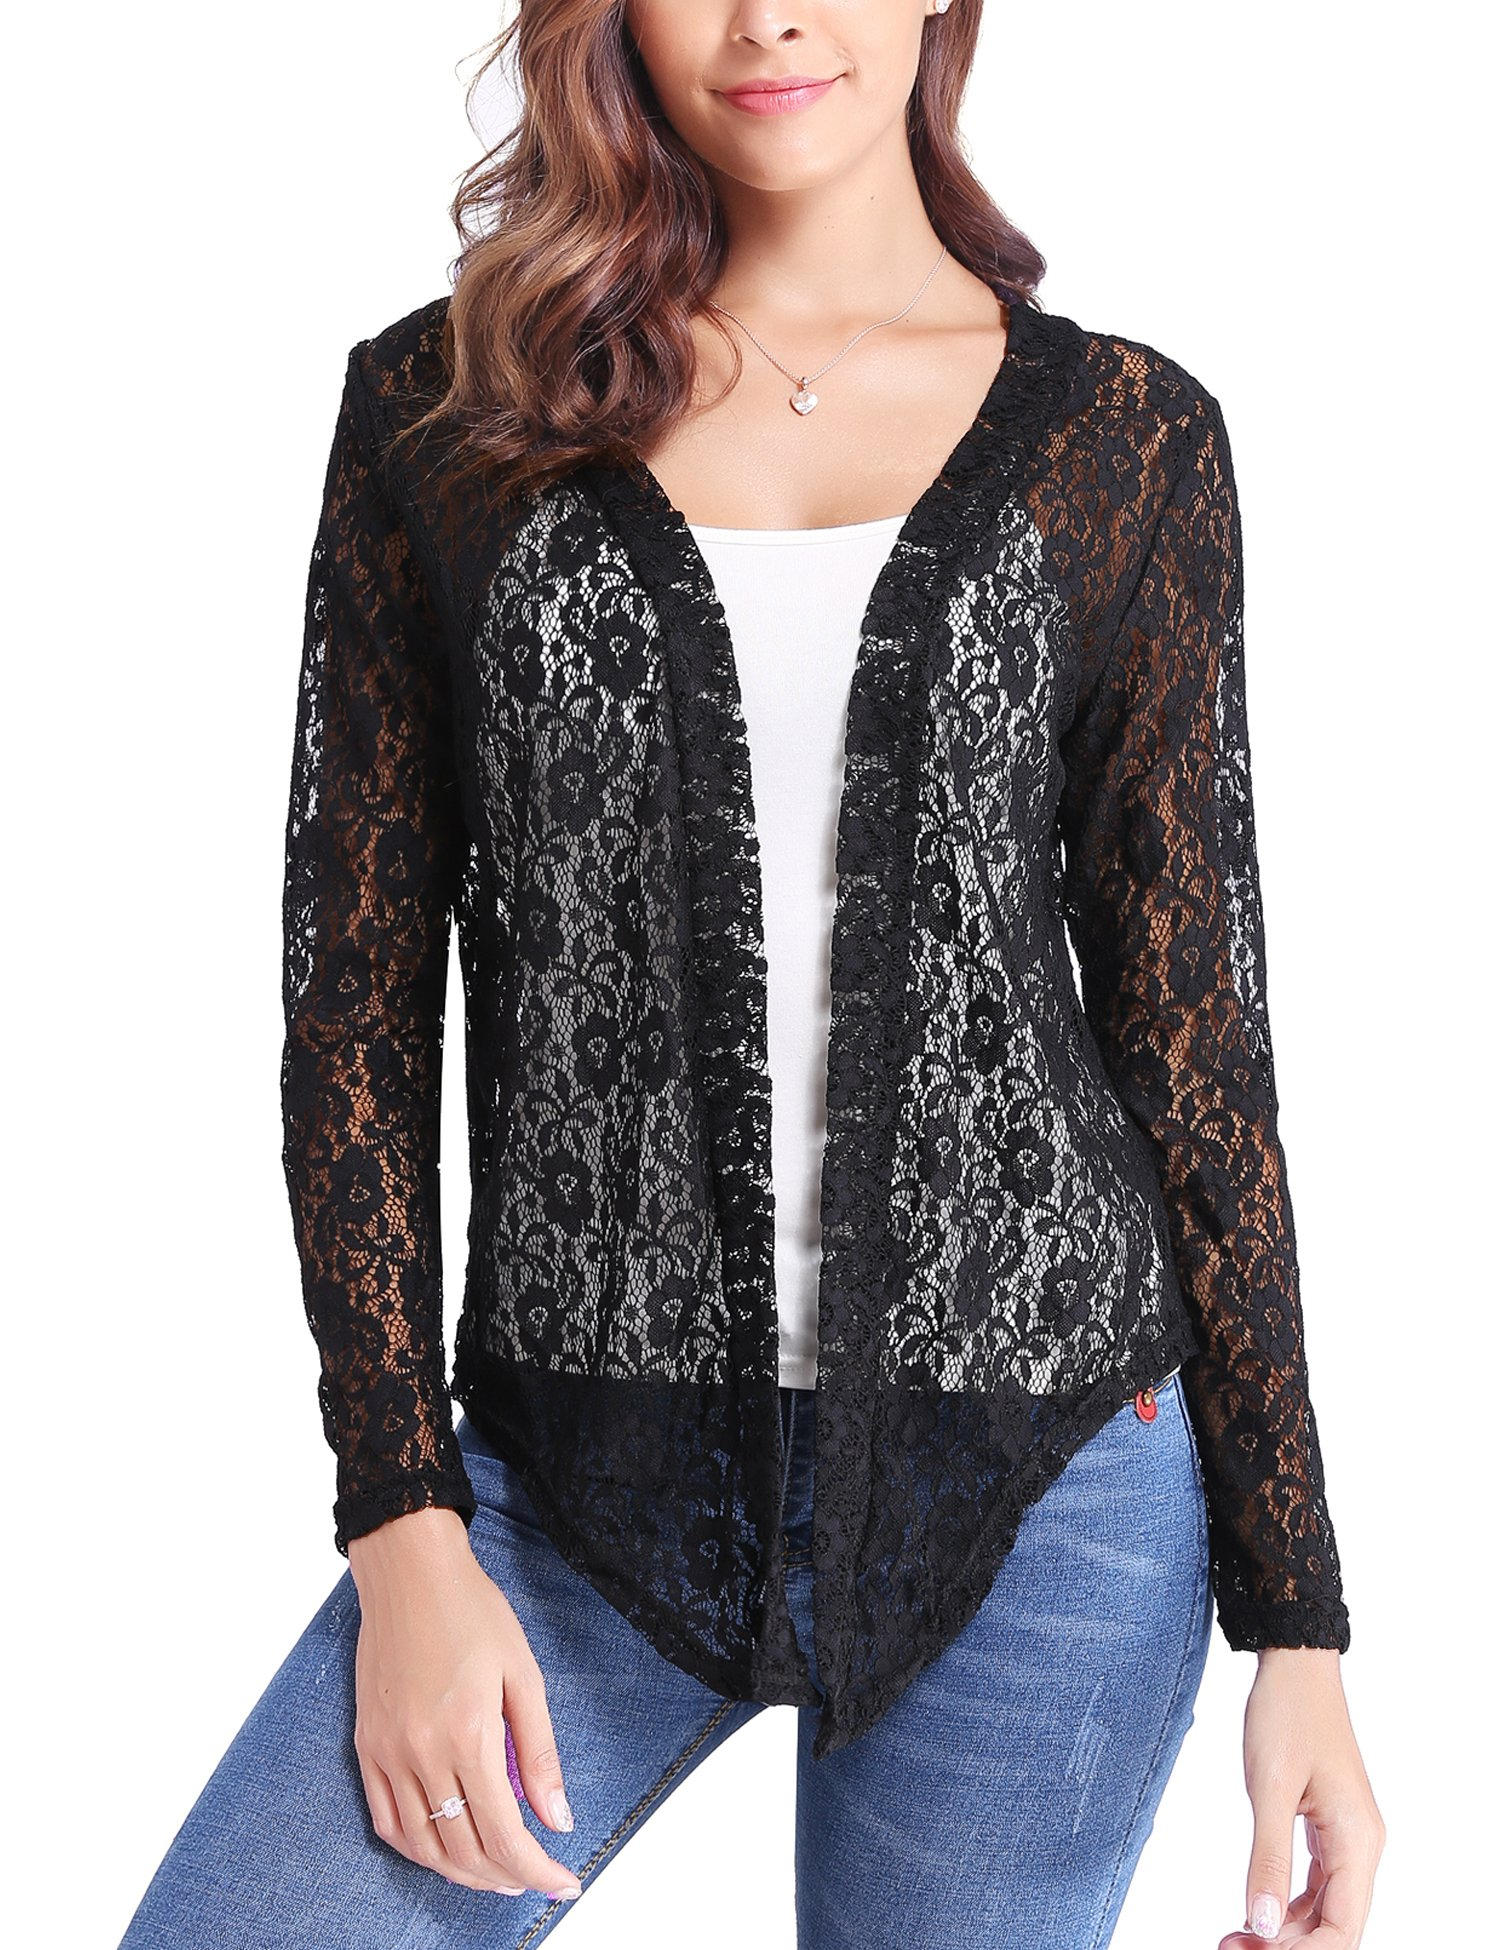 06f274093d15 Abollria Women Long Sleeve Floral Lace Shrug Open Front Bolero Cardigan